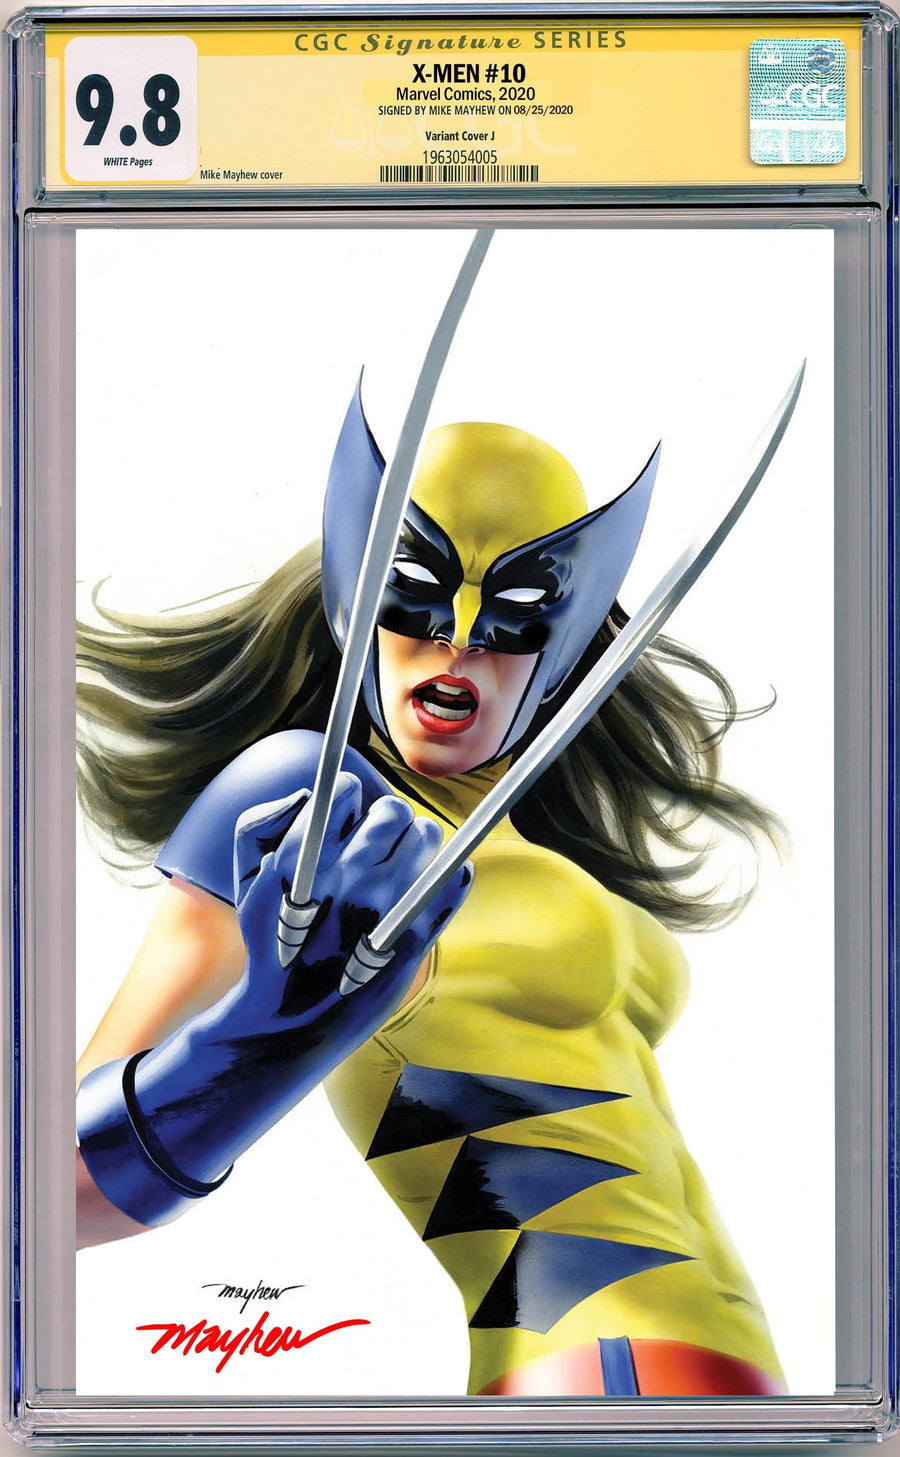 X-MEN #10 X-23 MIKE MAYHEW STUDIO EXCLUSIVE VARIANTS CGC SIG SERIES 9.6 AND ABOVE OPTIONS